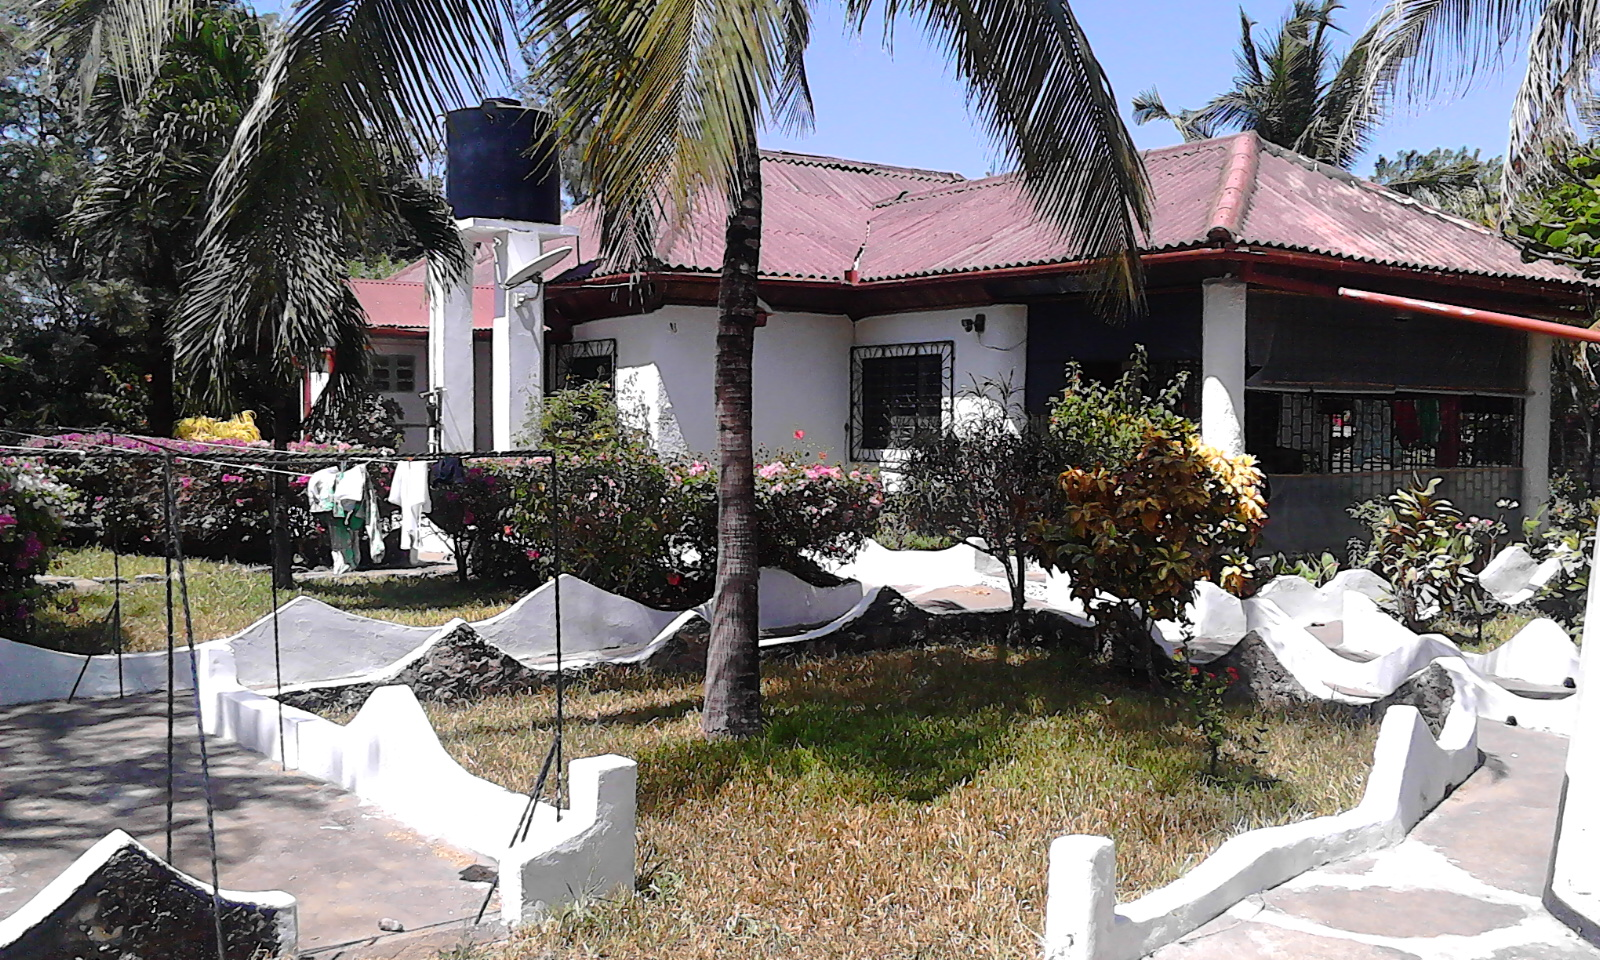 House for sale in watamu kenya malindi kenya propertiesmalindi beach plotsmalindi cottages malindi kenya propertiesmalindi beach plotsmalindi cottages